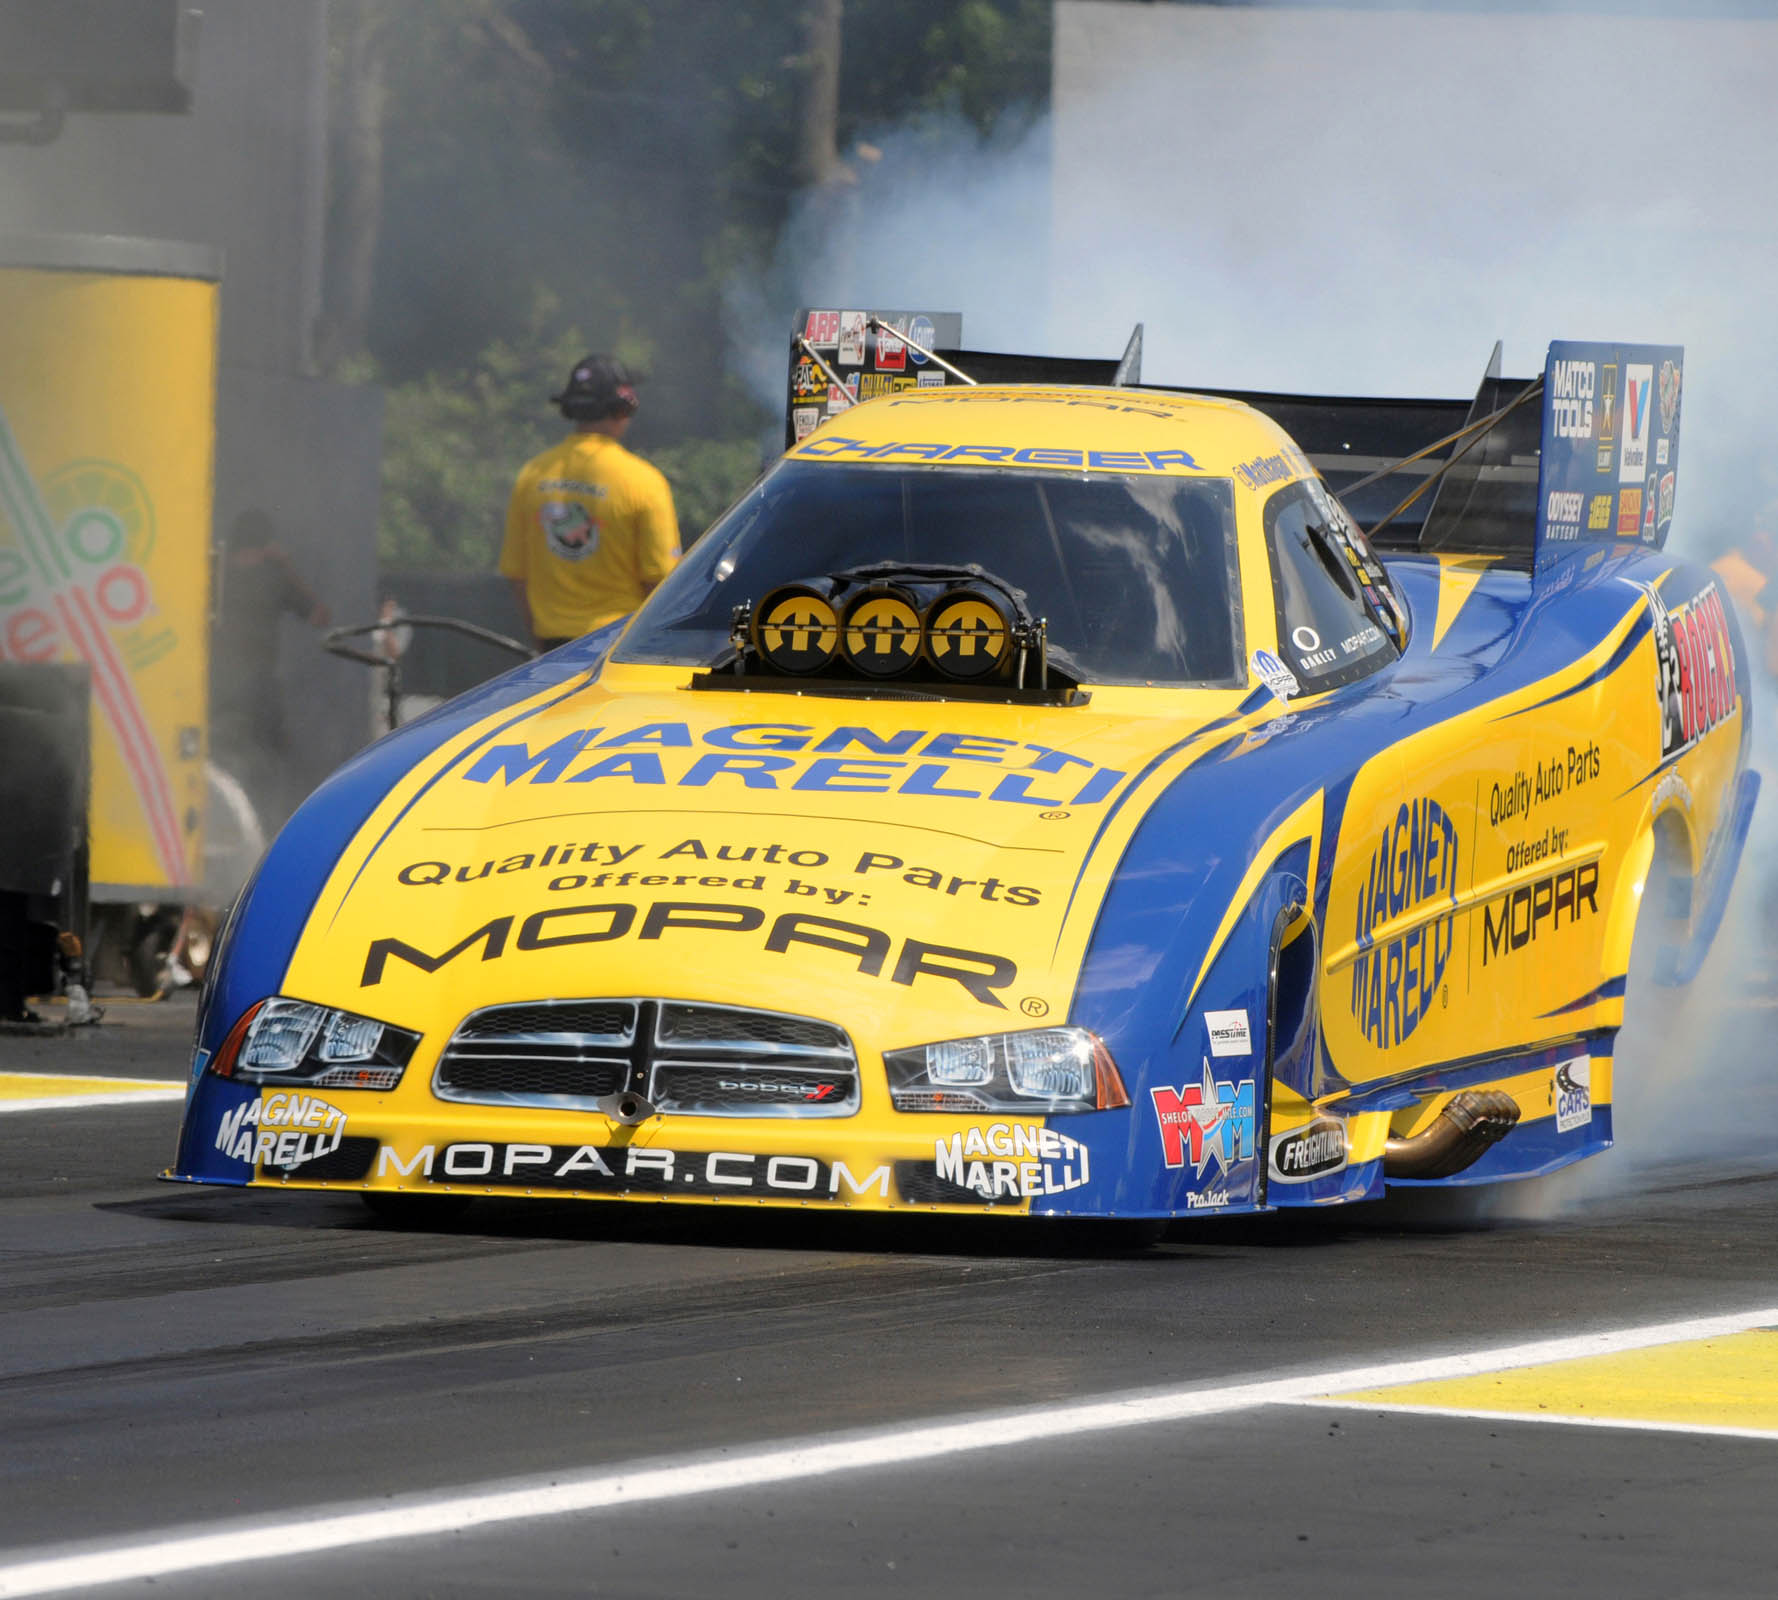 Drag Car 4k Wallpaper Funny Car Wallpapers Amp Images In High Quality All Hd